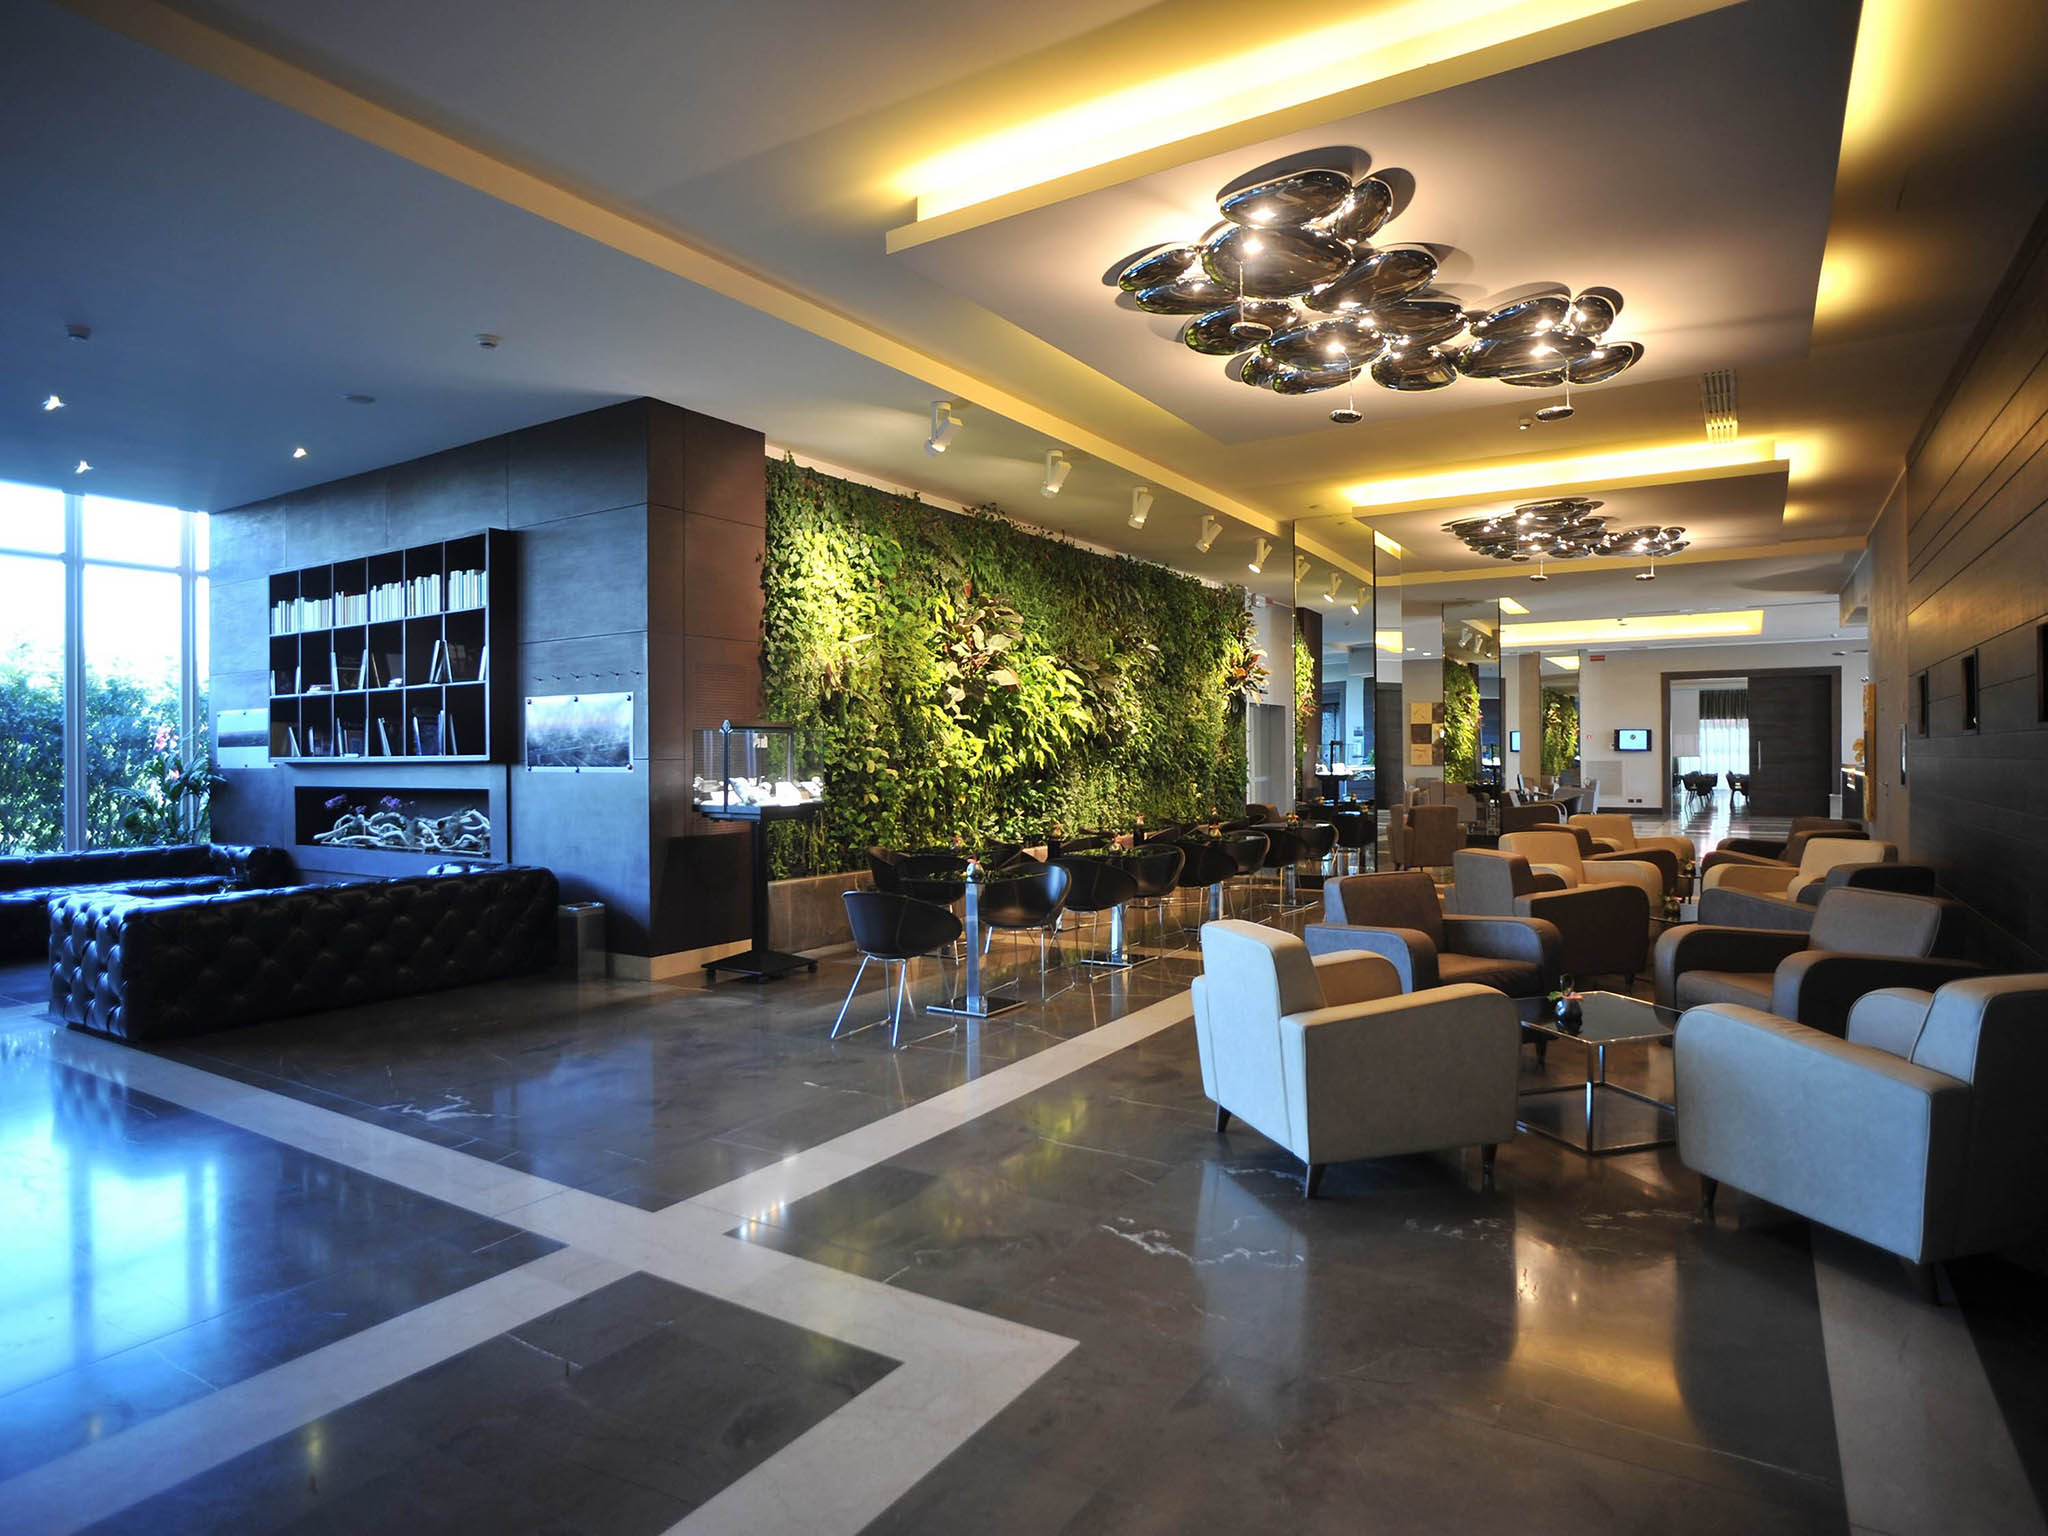 Hotel in milan klima hotel milano fiere for Hotel a milano